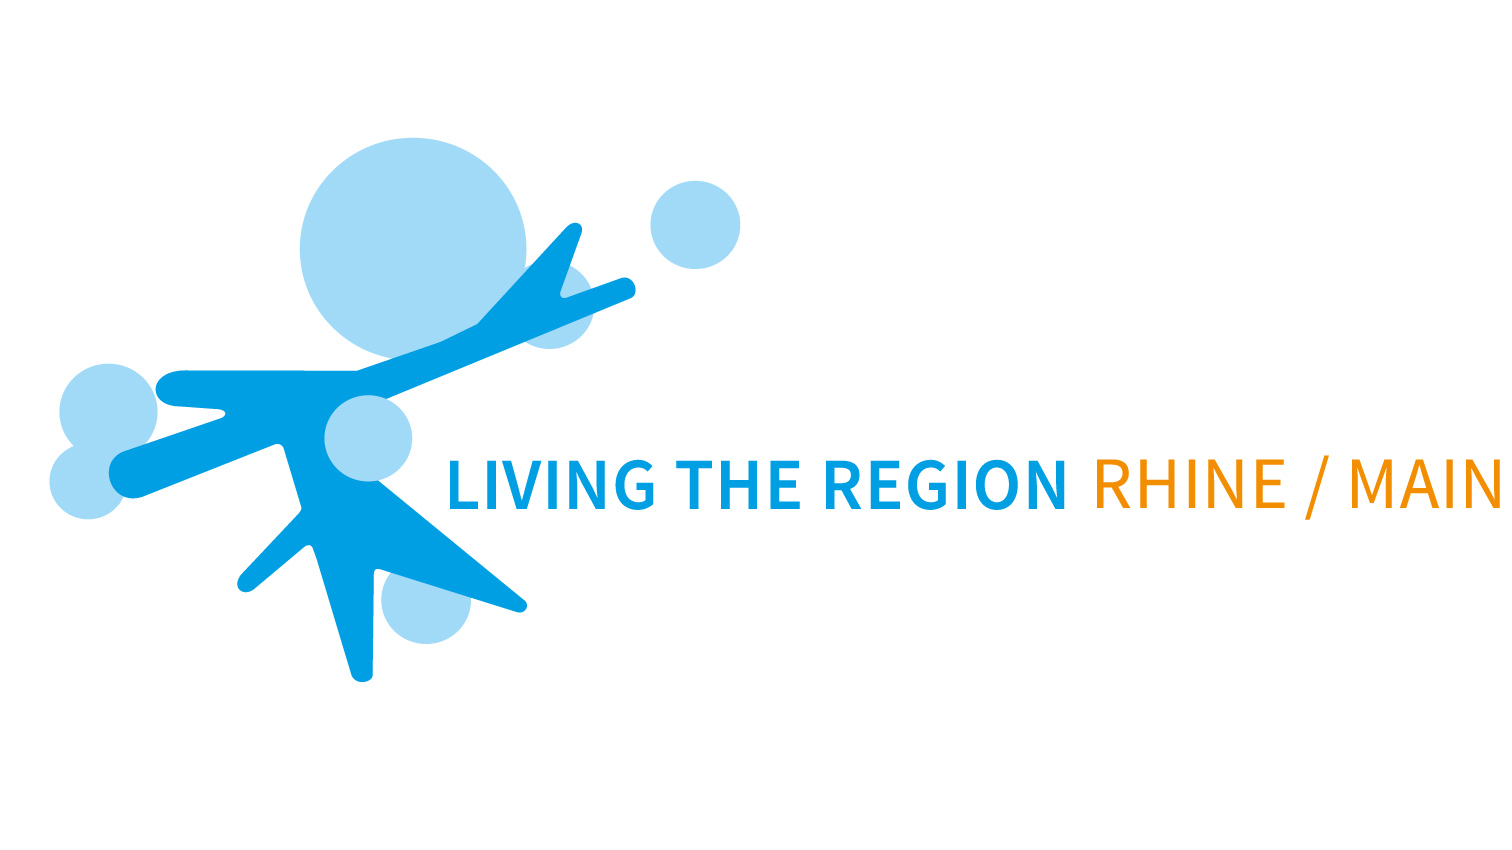 living rhinemain_logo-100c_40c_52m100y_CMYK